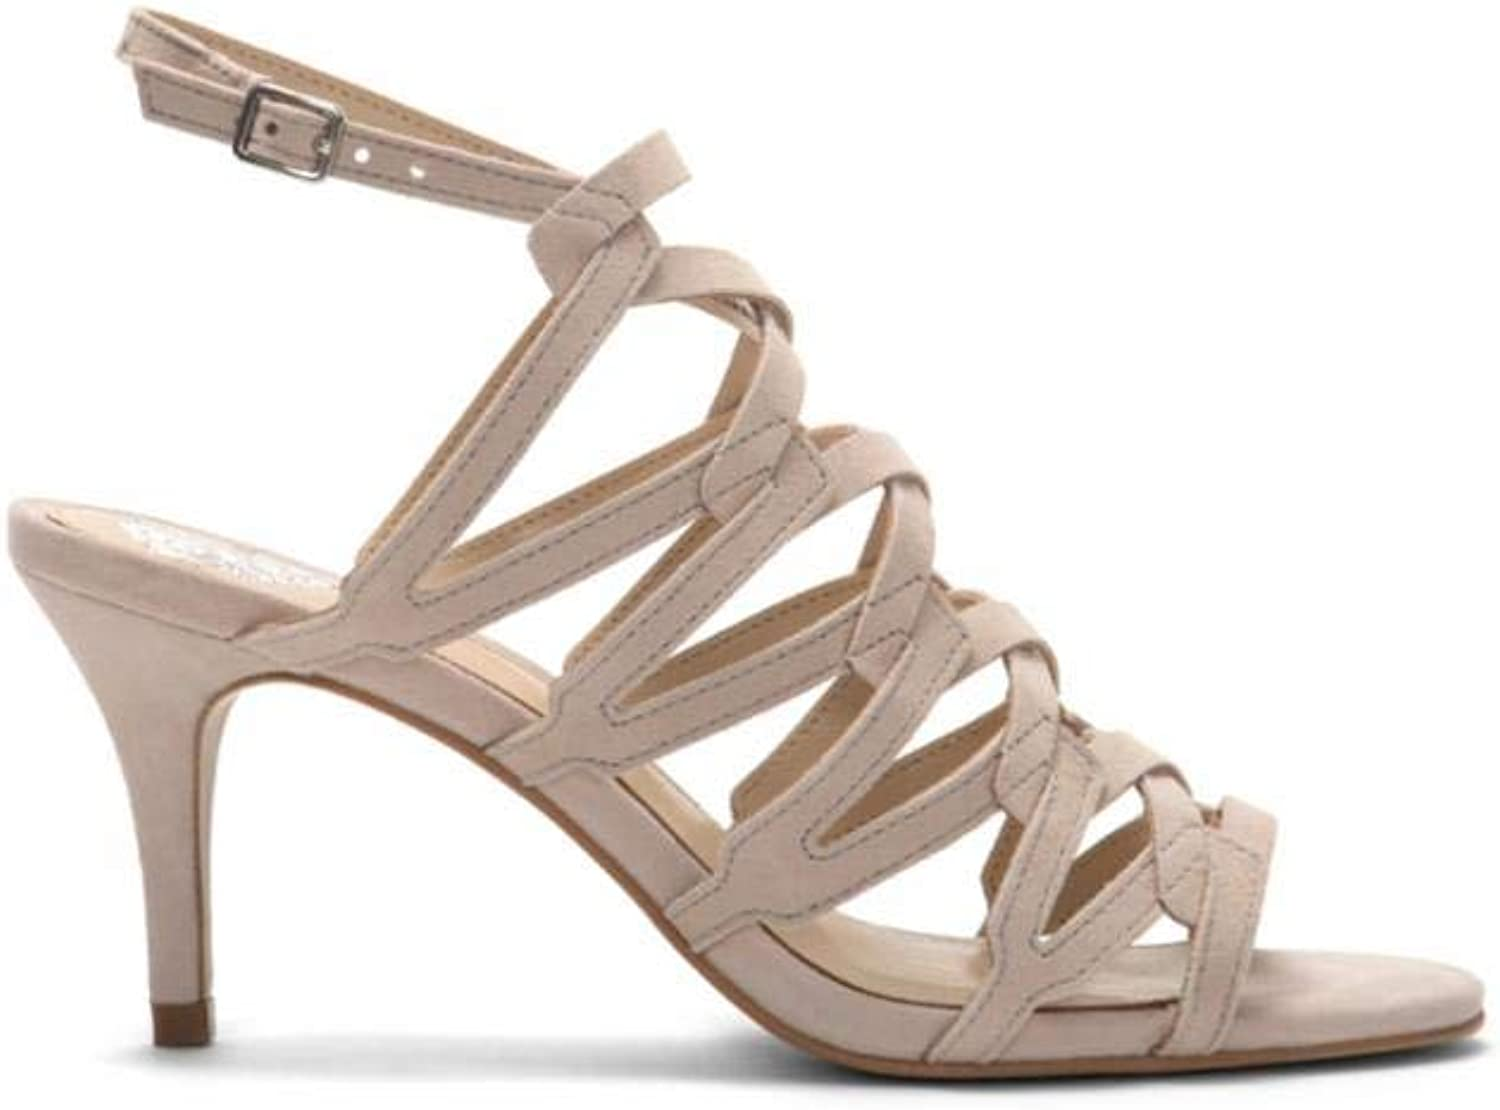 Vince Camuto Women's Phaelyn Nude M